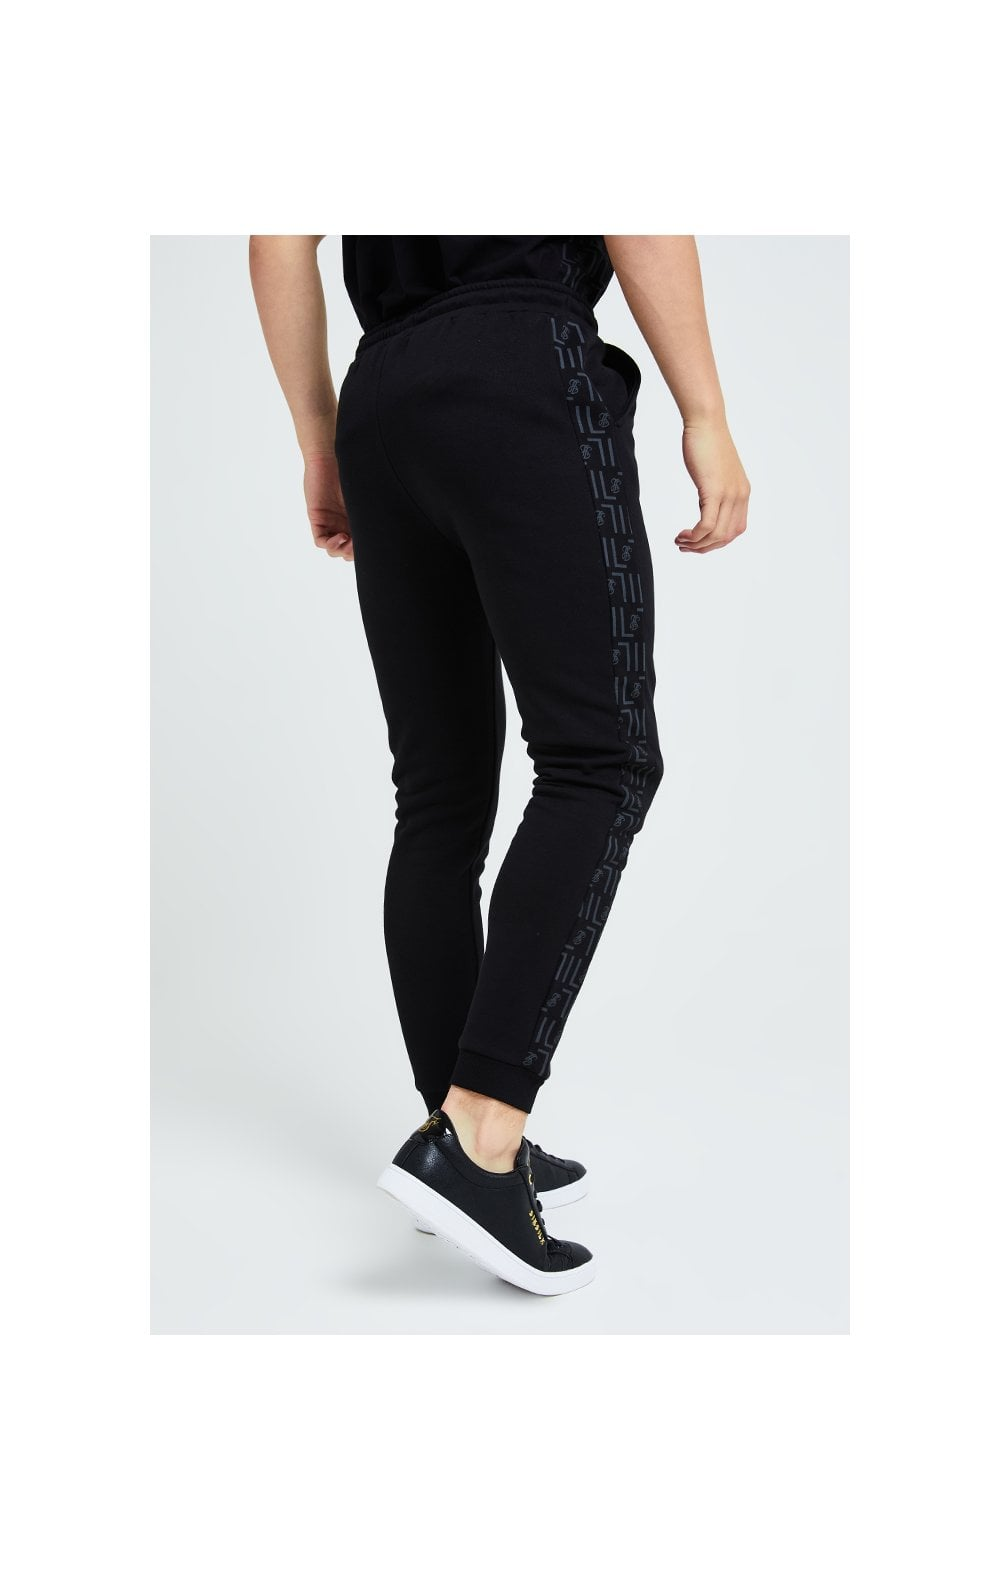 Illusive London Elite Joggers – Black (2)